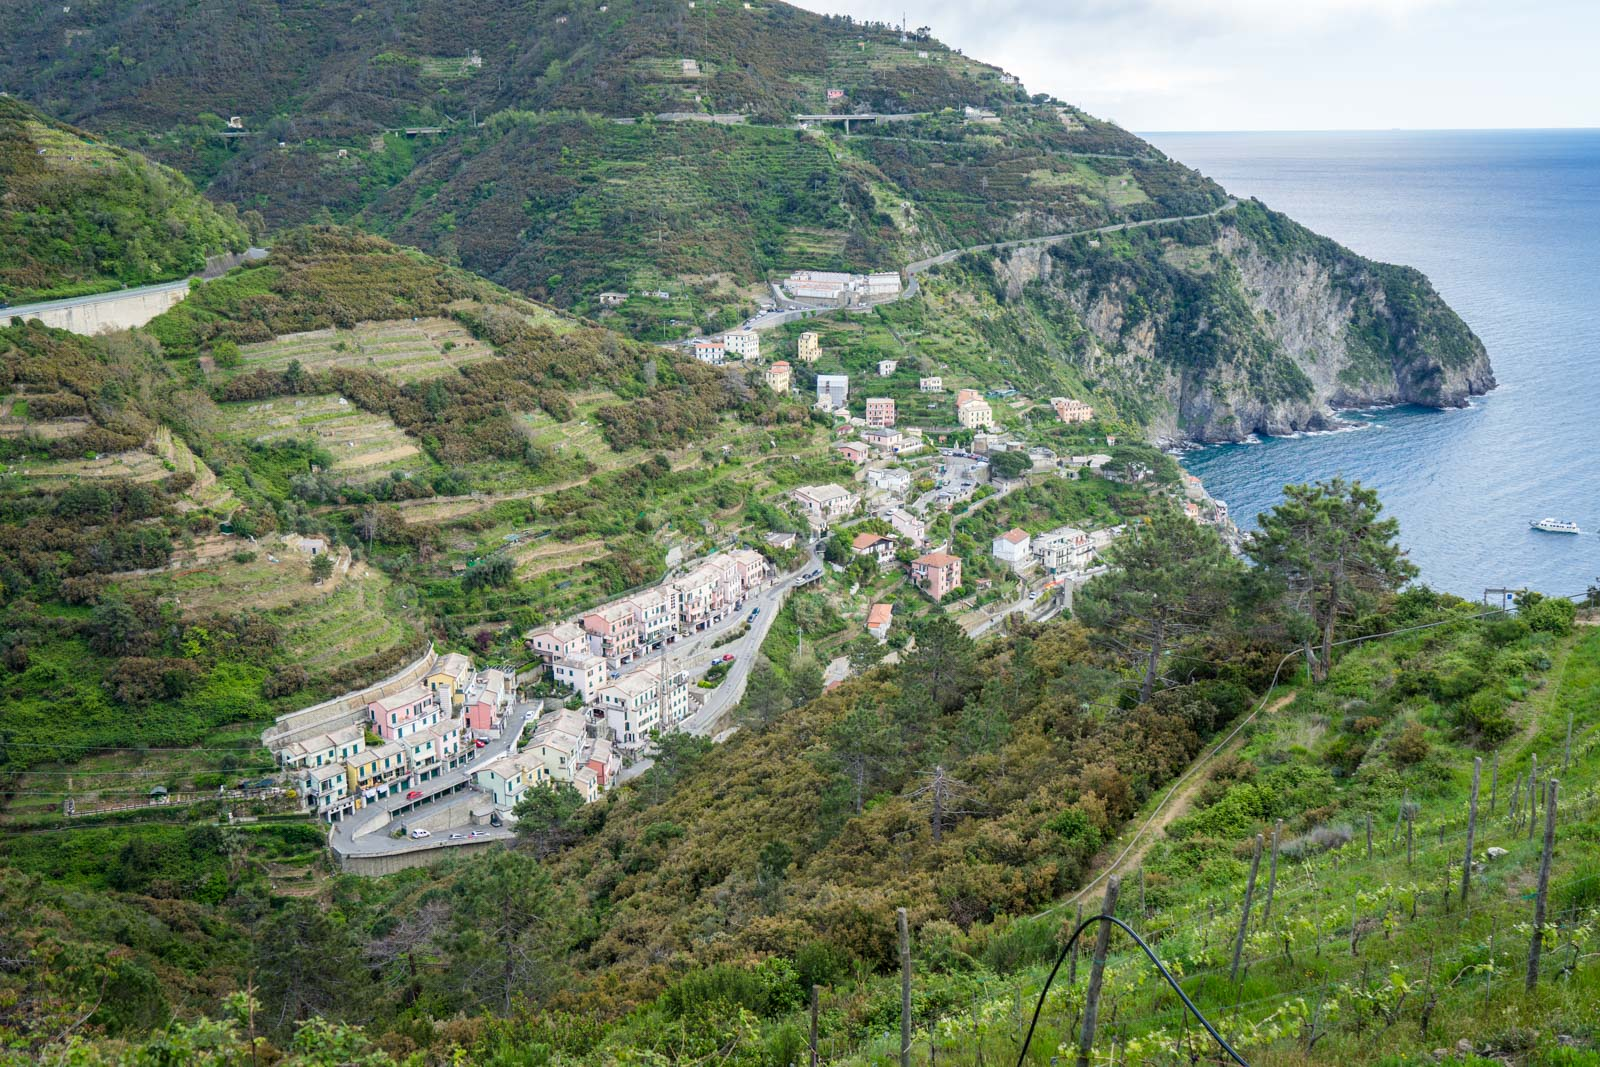 Cinque Terre Hiking Guide